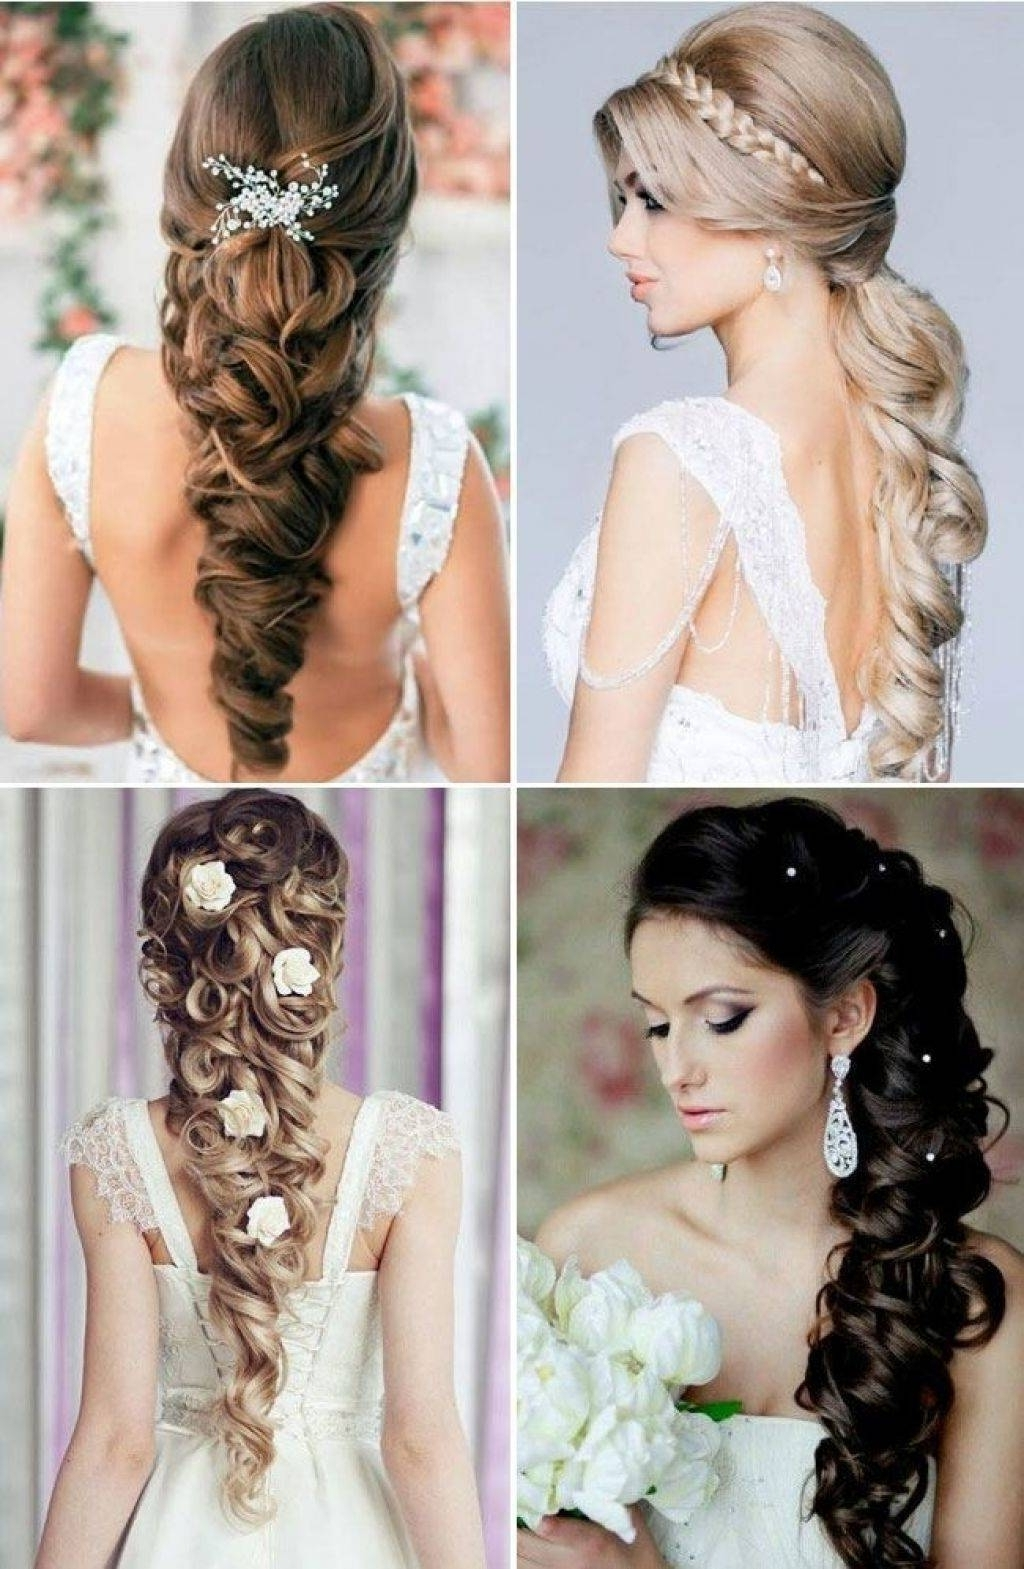 Most Popular Wedding Hairstyles For Long Hair Bridesmaid Within The Long Hairstyle For Bride – Hairstyle (View 5 of 15)